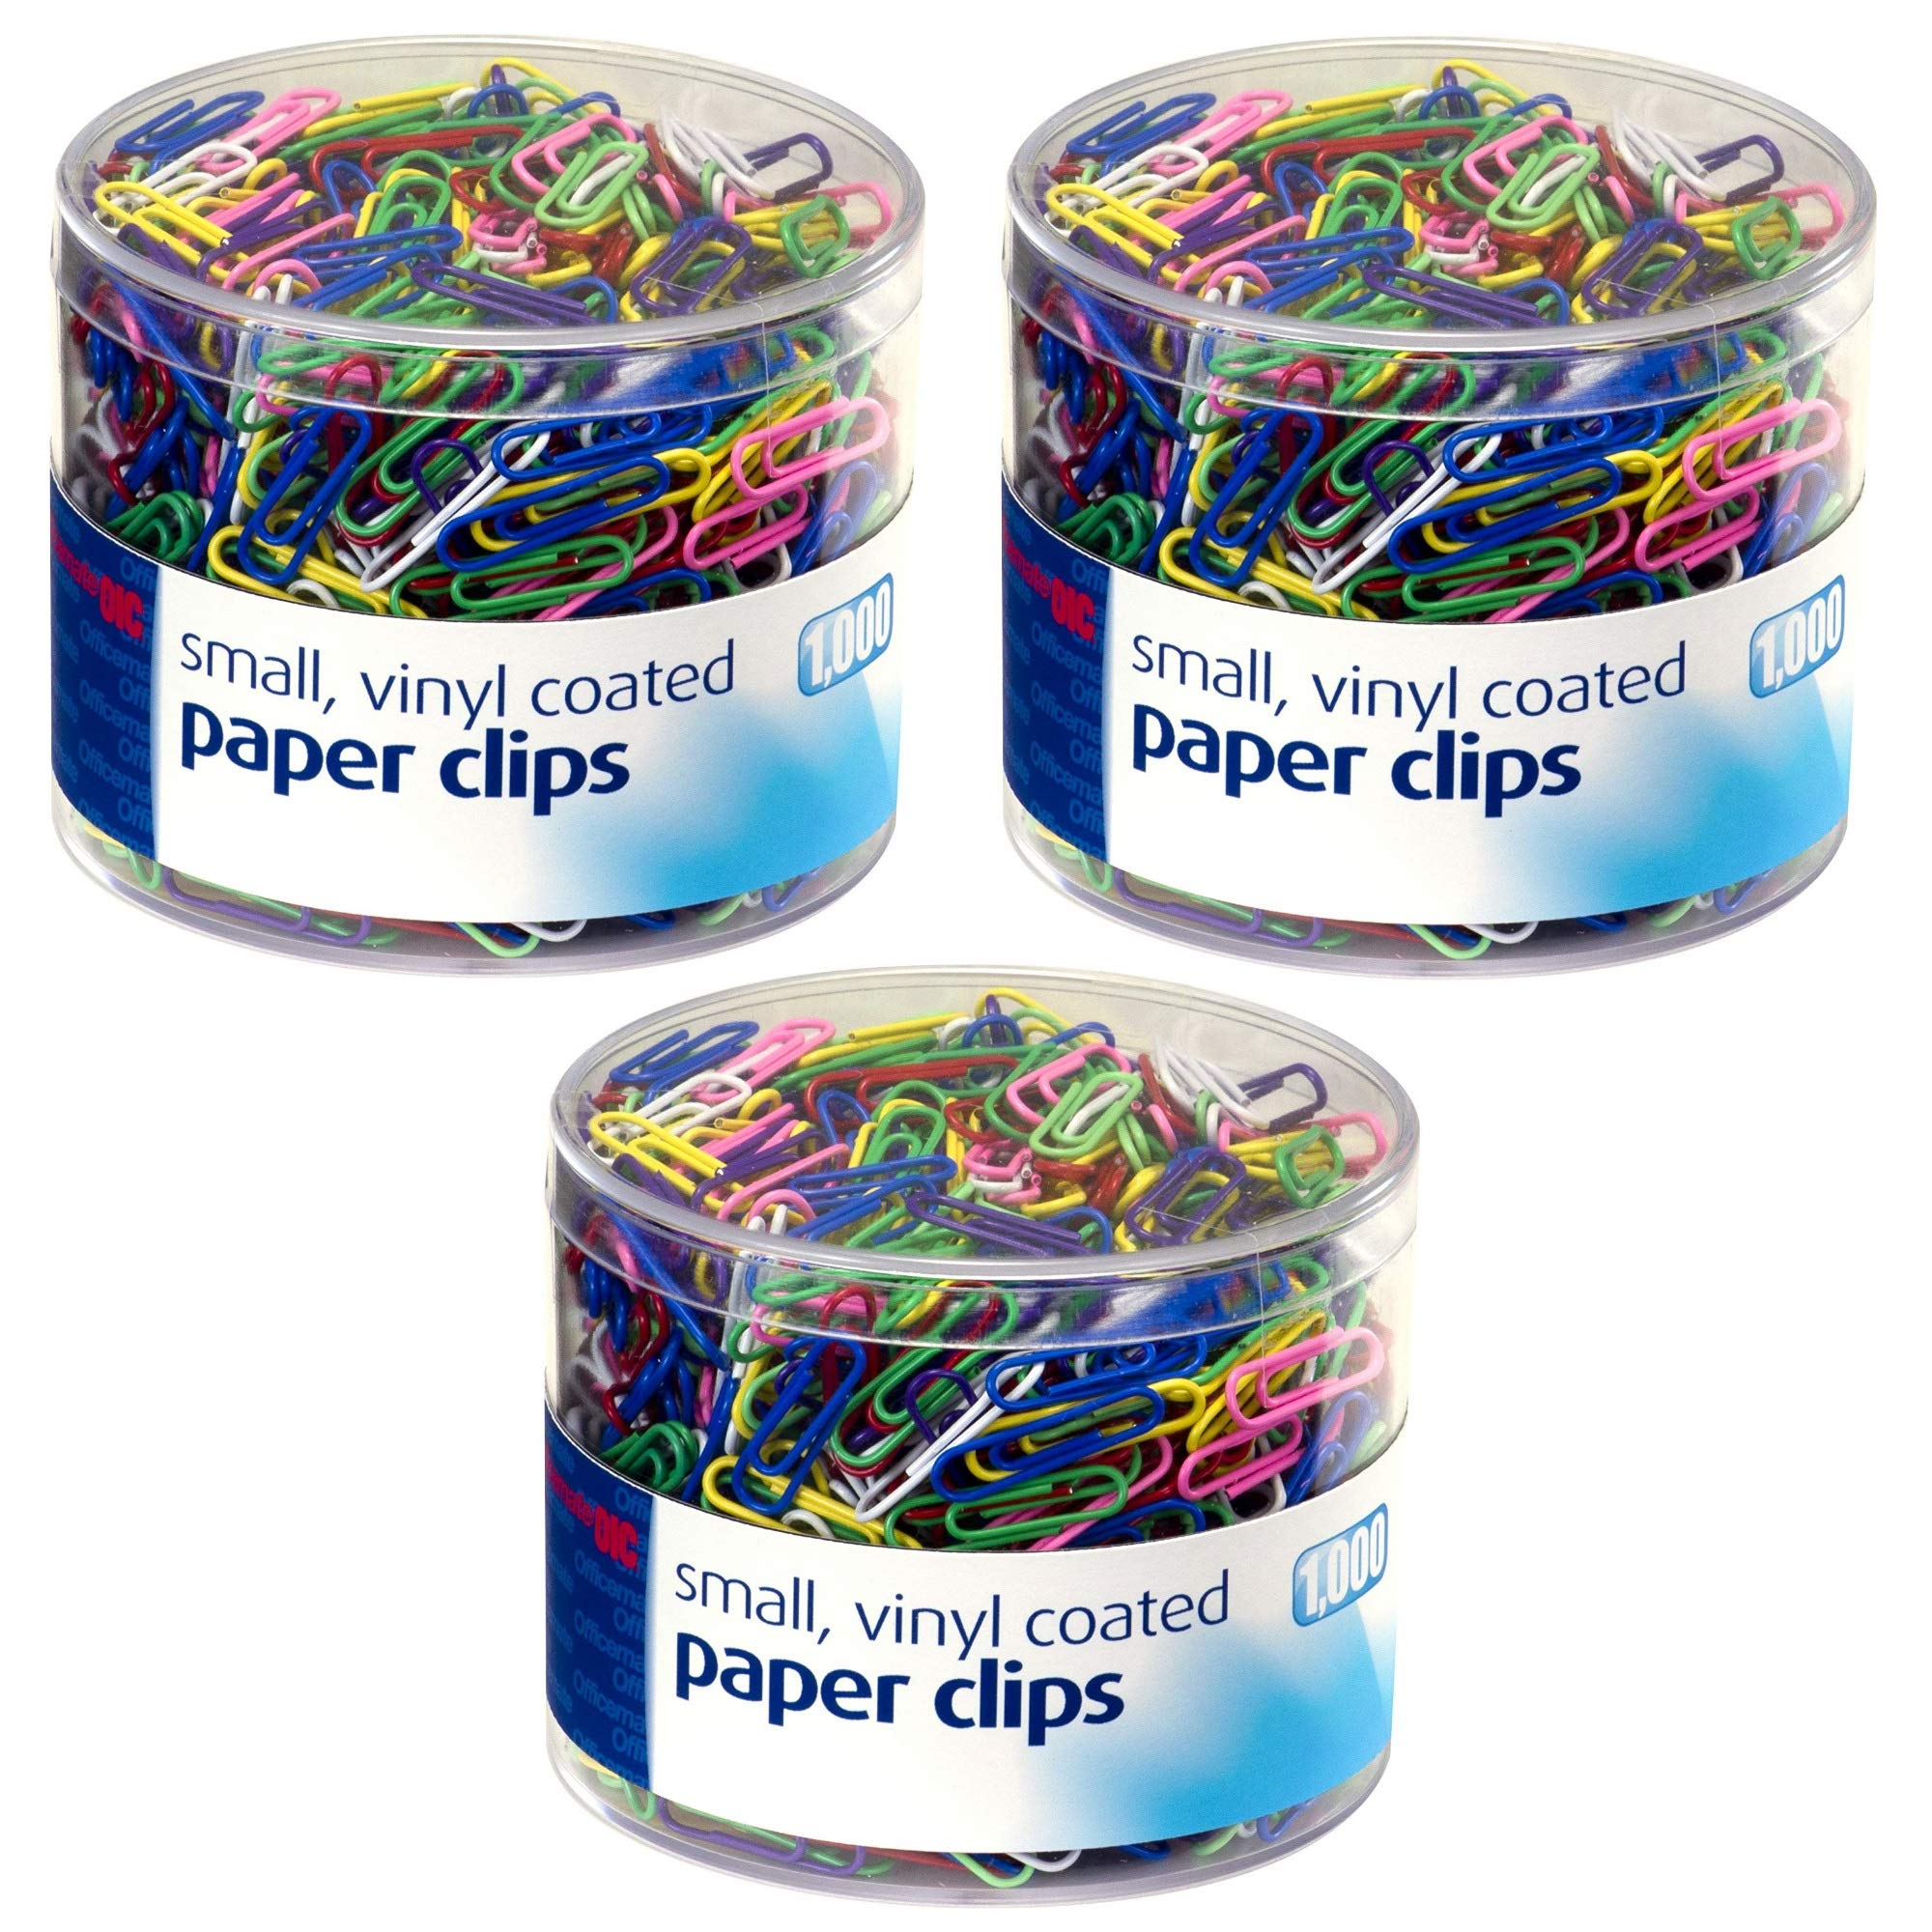 Officemate Vinyl Coated #2 Paper Clips, Assorted Colors, Tub of 1000 (97634), 3 Pack by Officemate